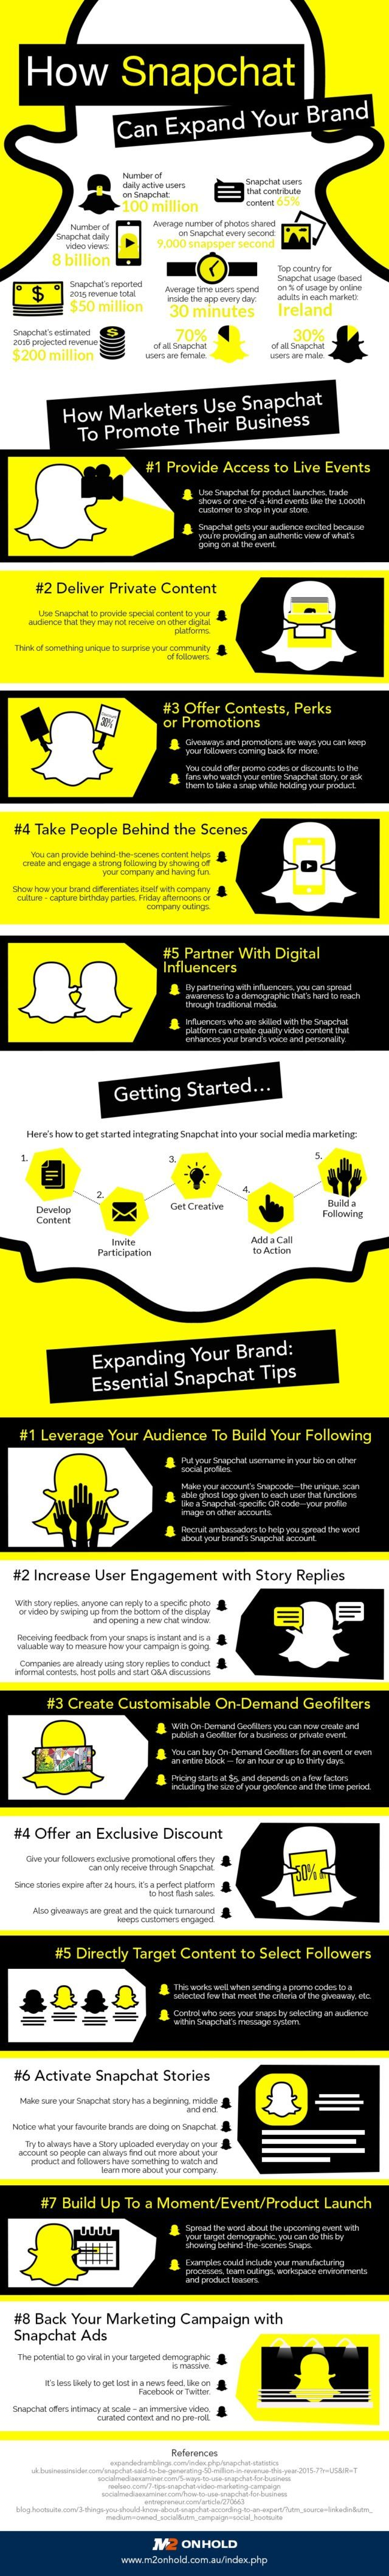 Snapchat marketing for Business